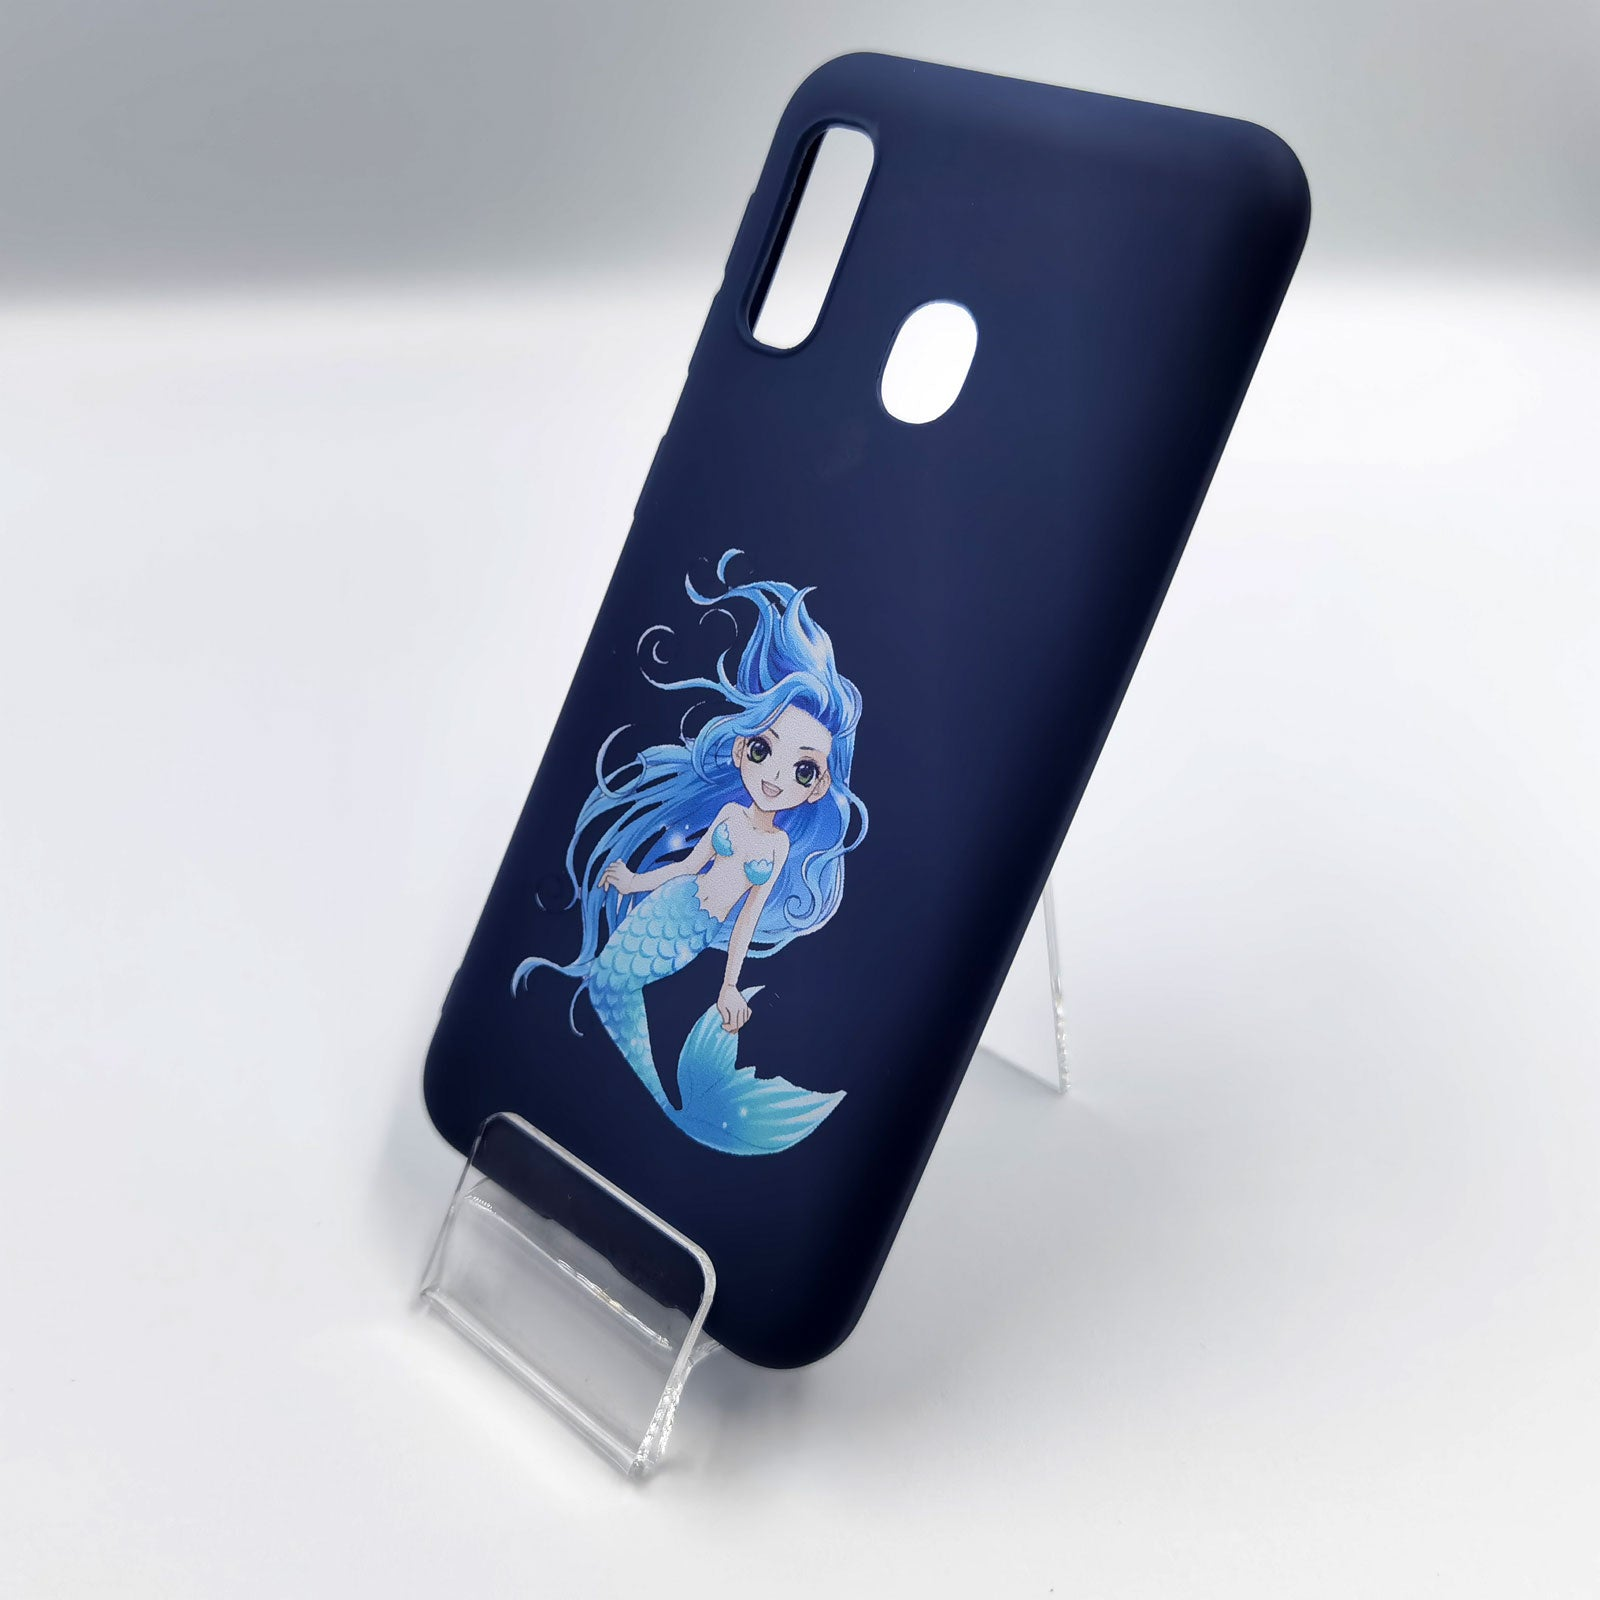 Husa Samsung Galaxy A20e model Blue Mermaid, Silicon, TPU, Viceversa Multicolor